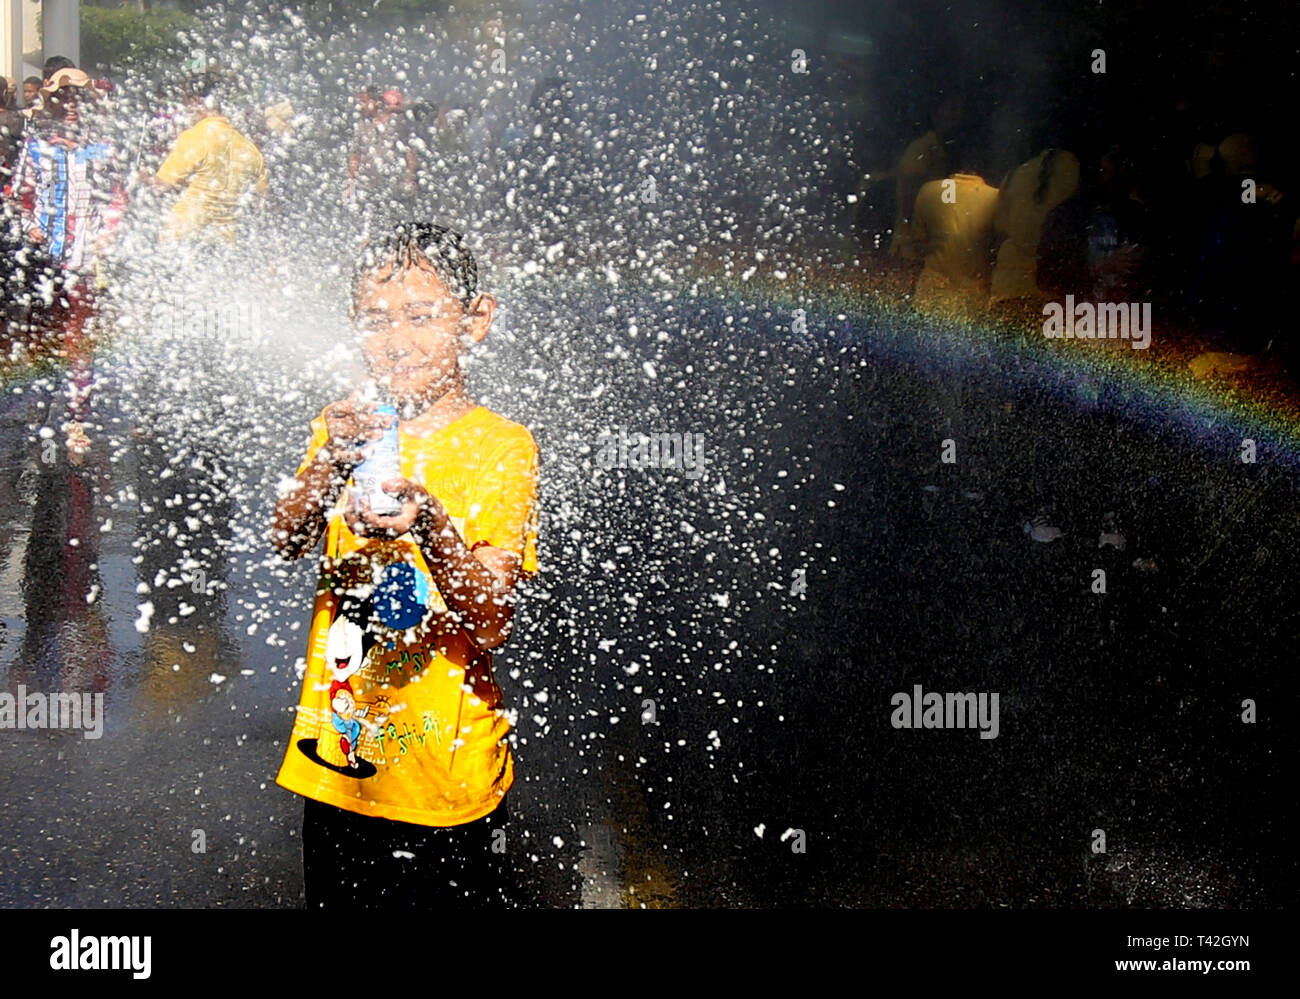 Yangon, Myanmar. 13 avr, 2019. Un garçon joue au cours de la fête de l'eau dans la région de Yangon, Myanmar, le 13 avril 2019. L'eau du Myanmar Thingyan traditionnel Festival a fêté partout au pays samedi matin. Credit : U Aung/Xinhua/Alamy Live News Photo Stock